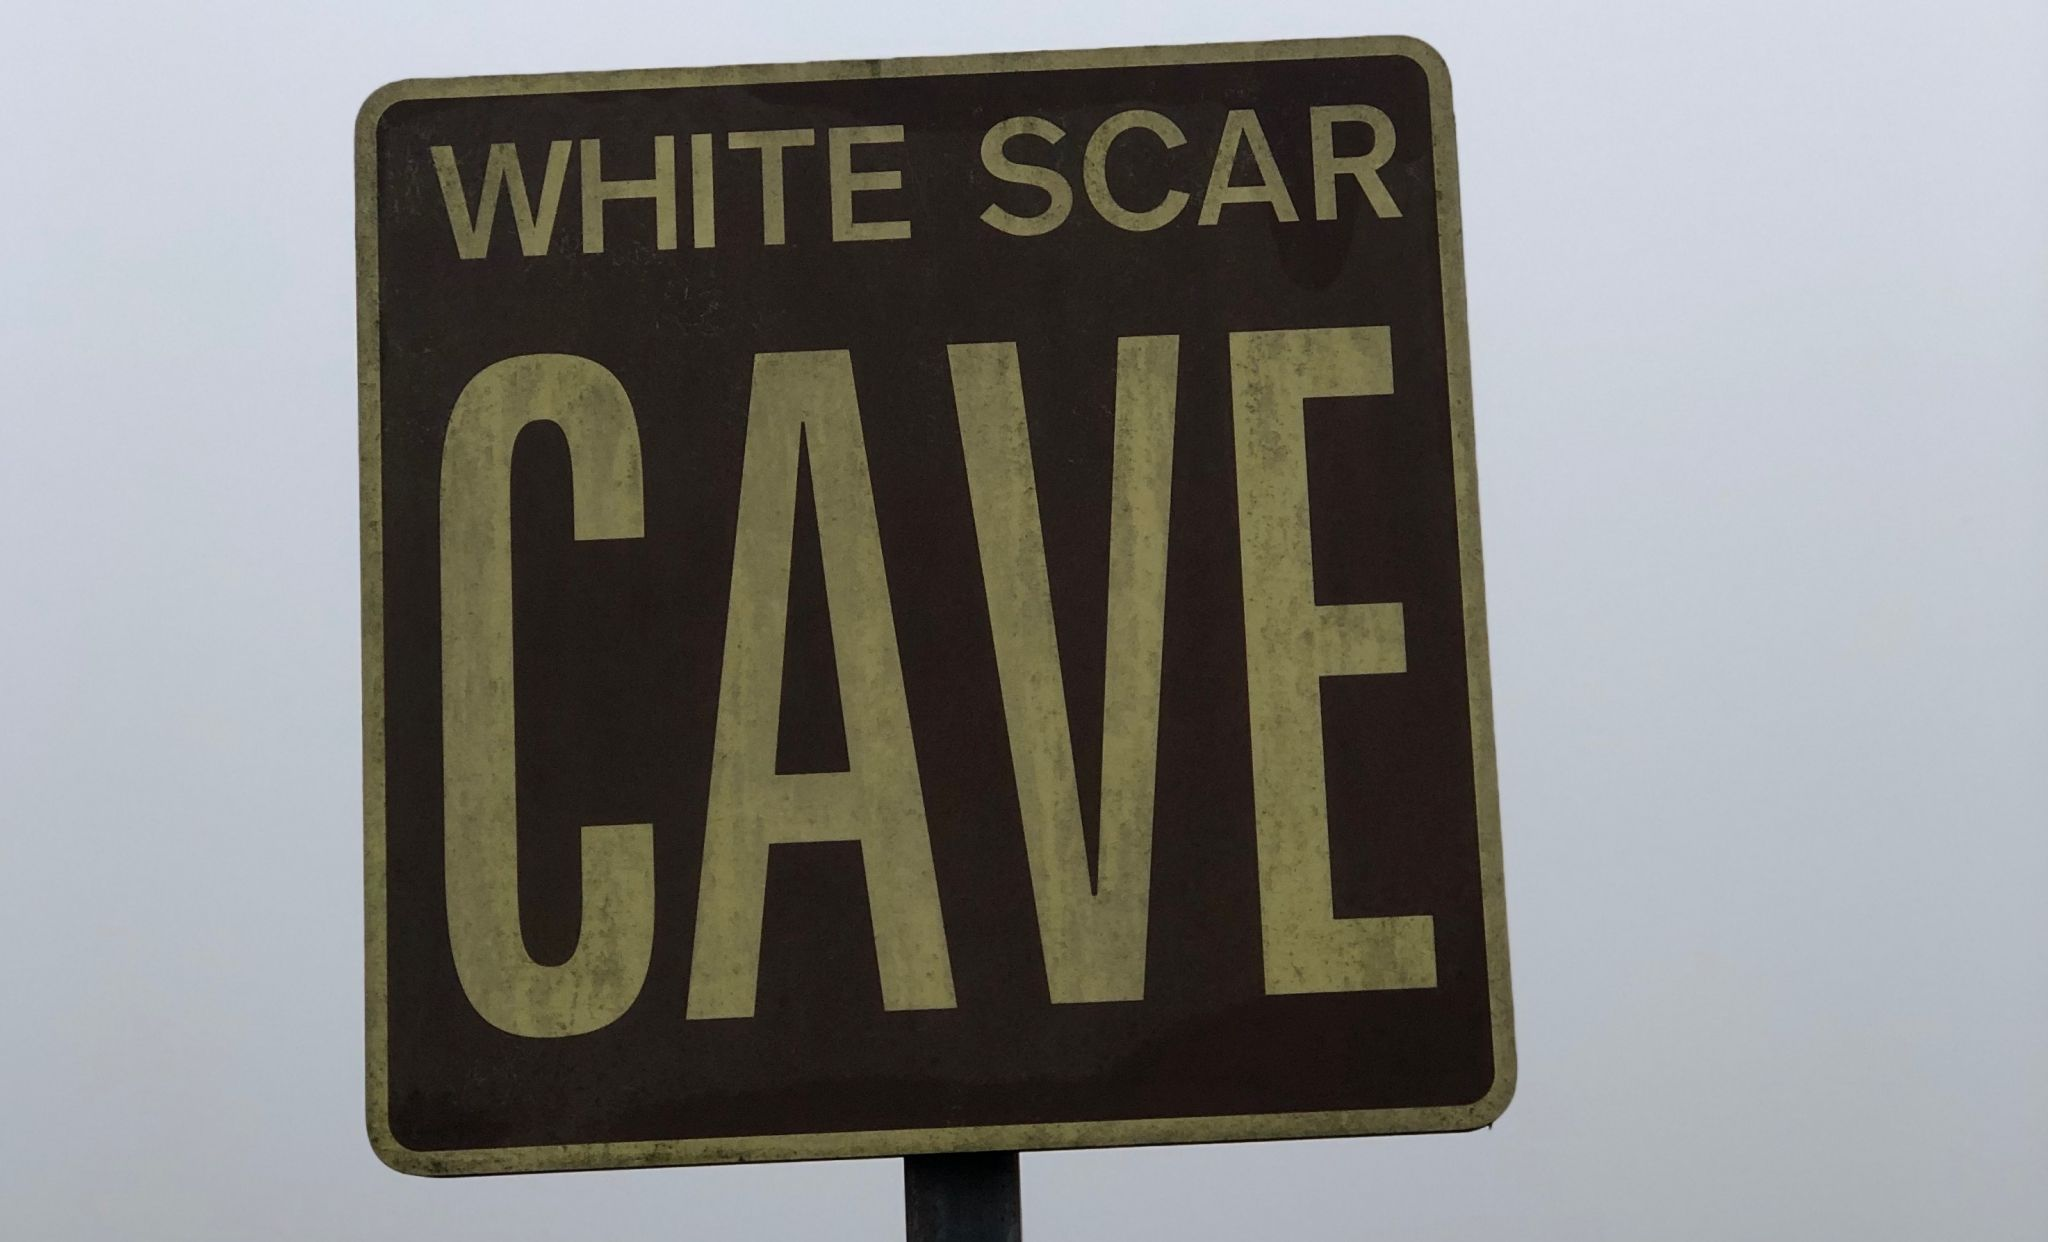 A Yorkshire Adventure to White Scar Caves